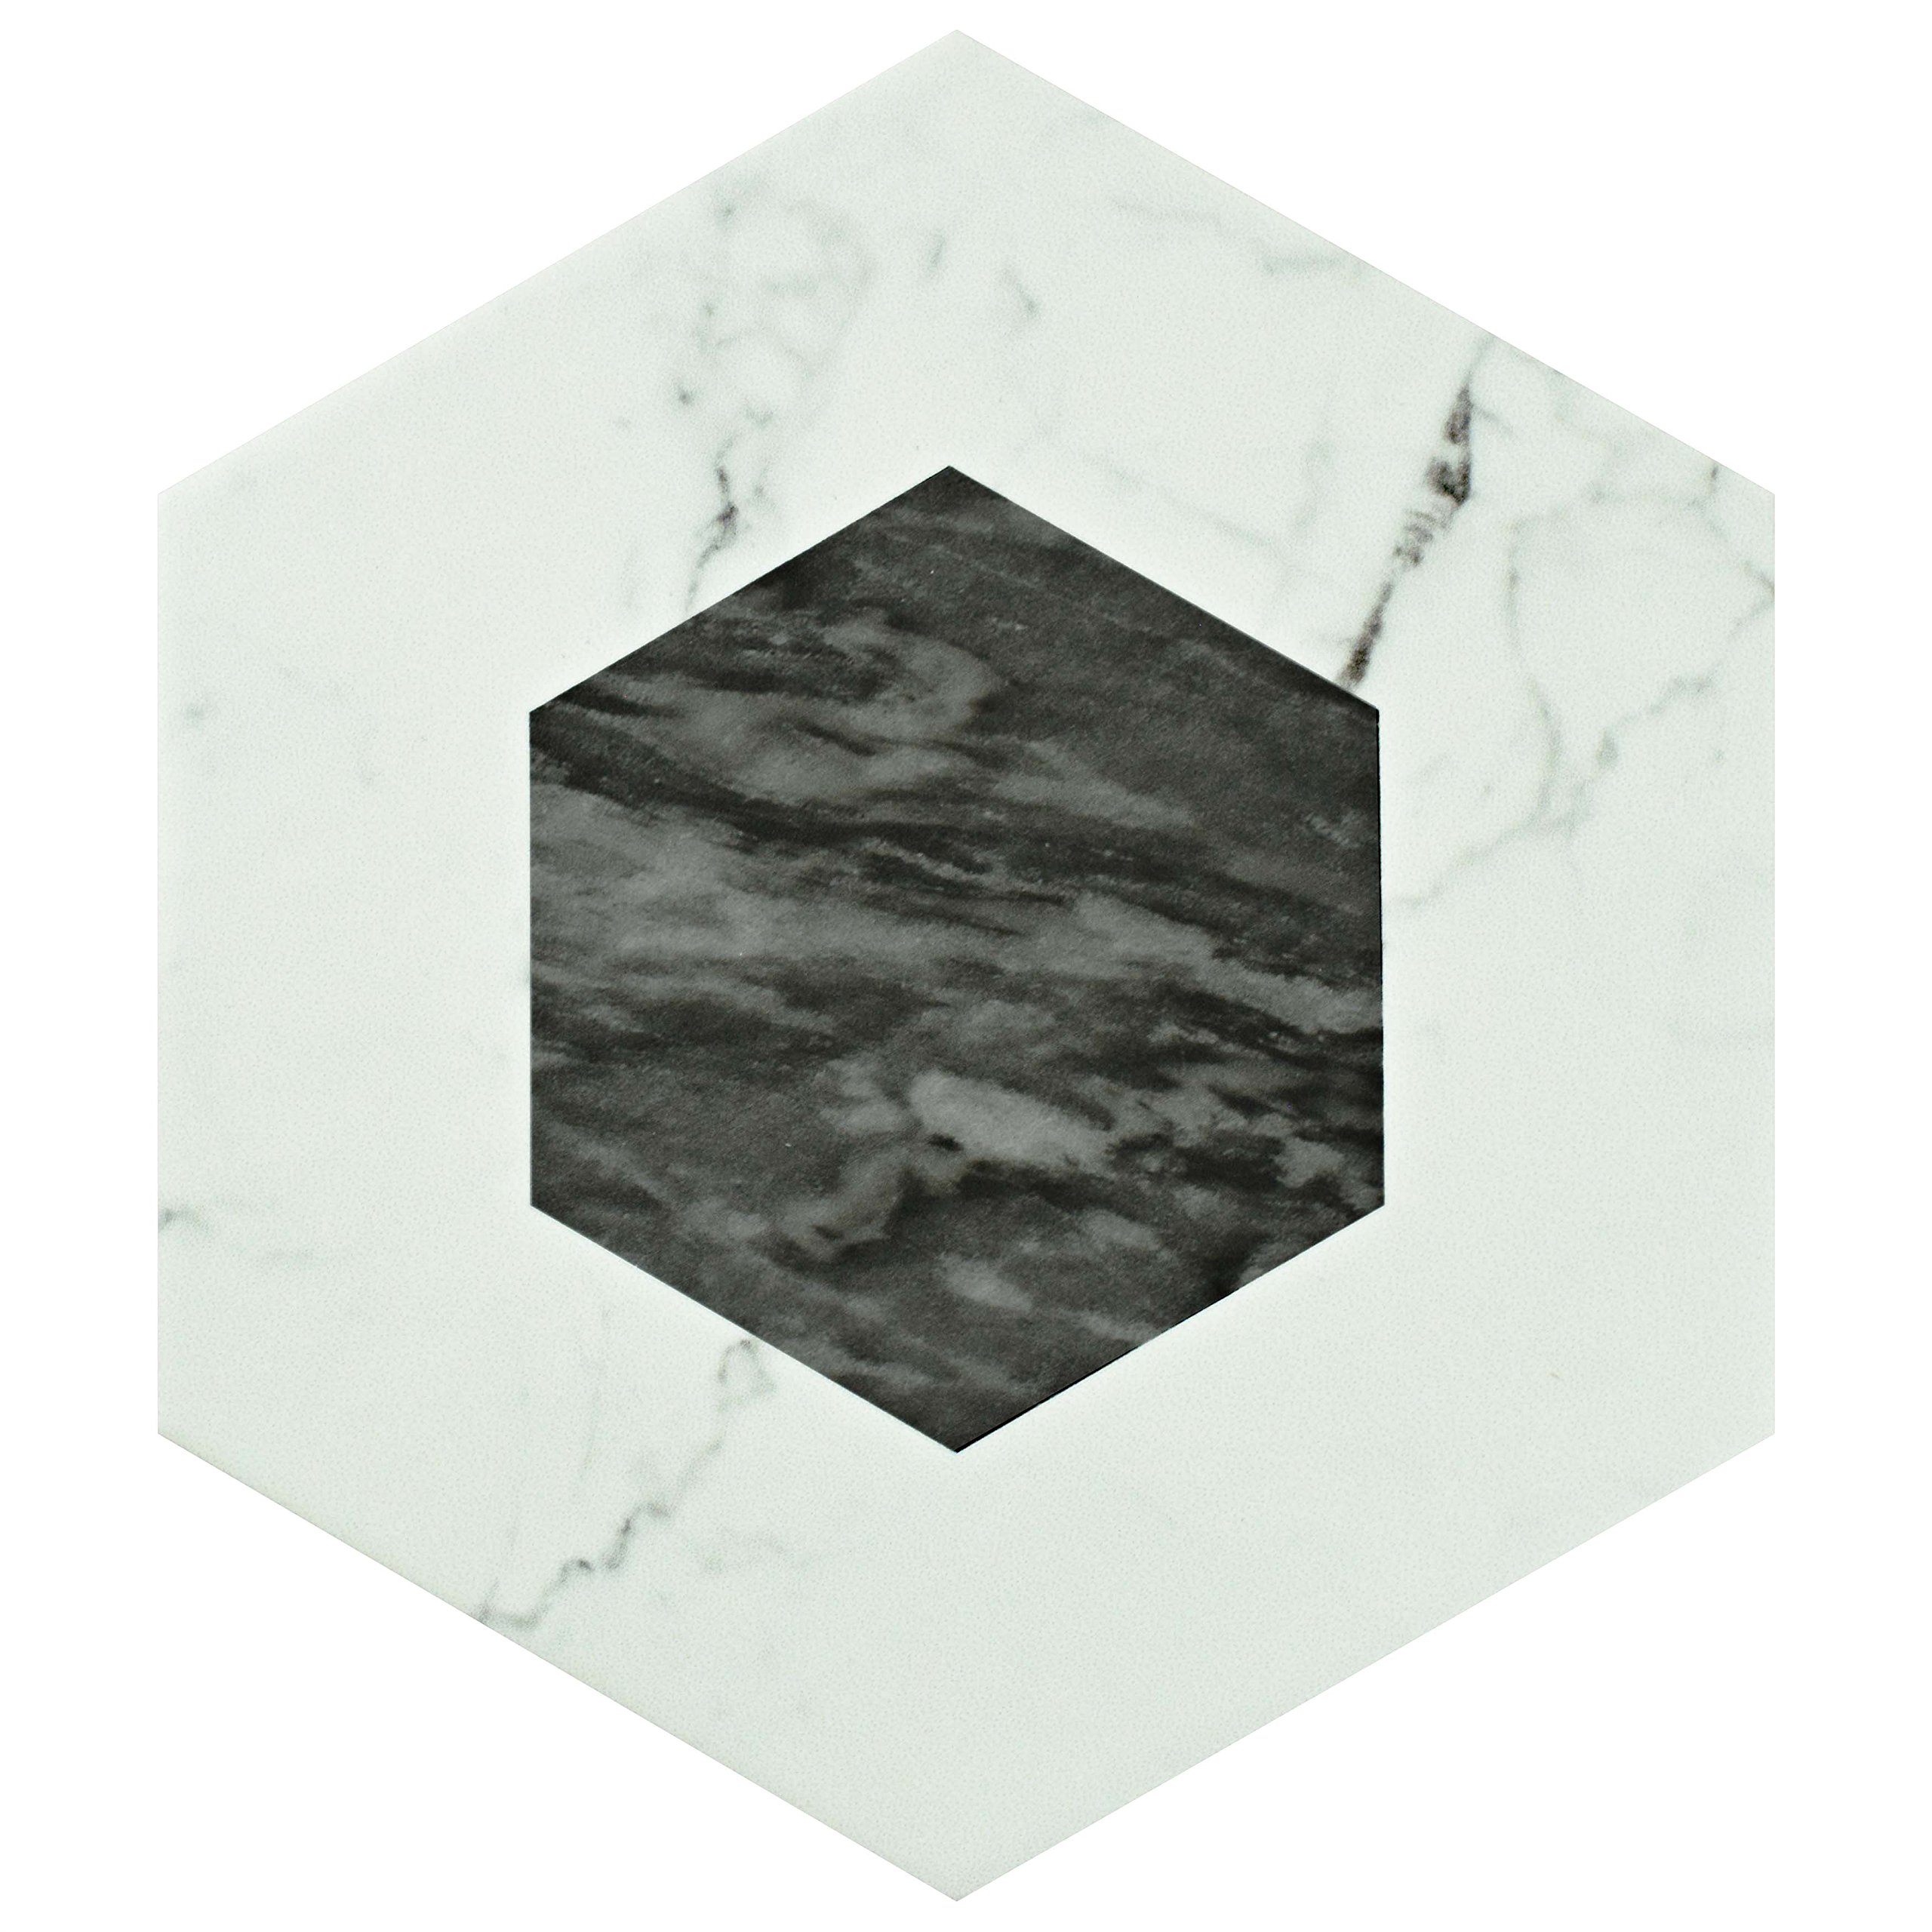 SomerTile FEQ8BXG Murmur Bardiglio Hexagon Porcelain Floor and Wall Tile, 7'' x 8'', Geo by SOMERTILE (Image #6)